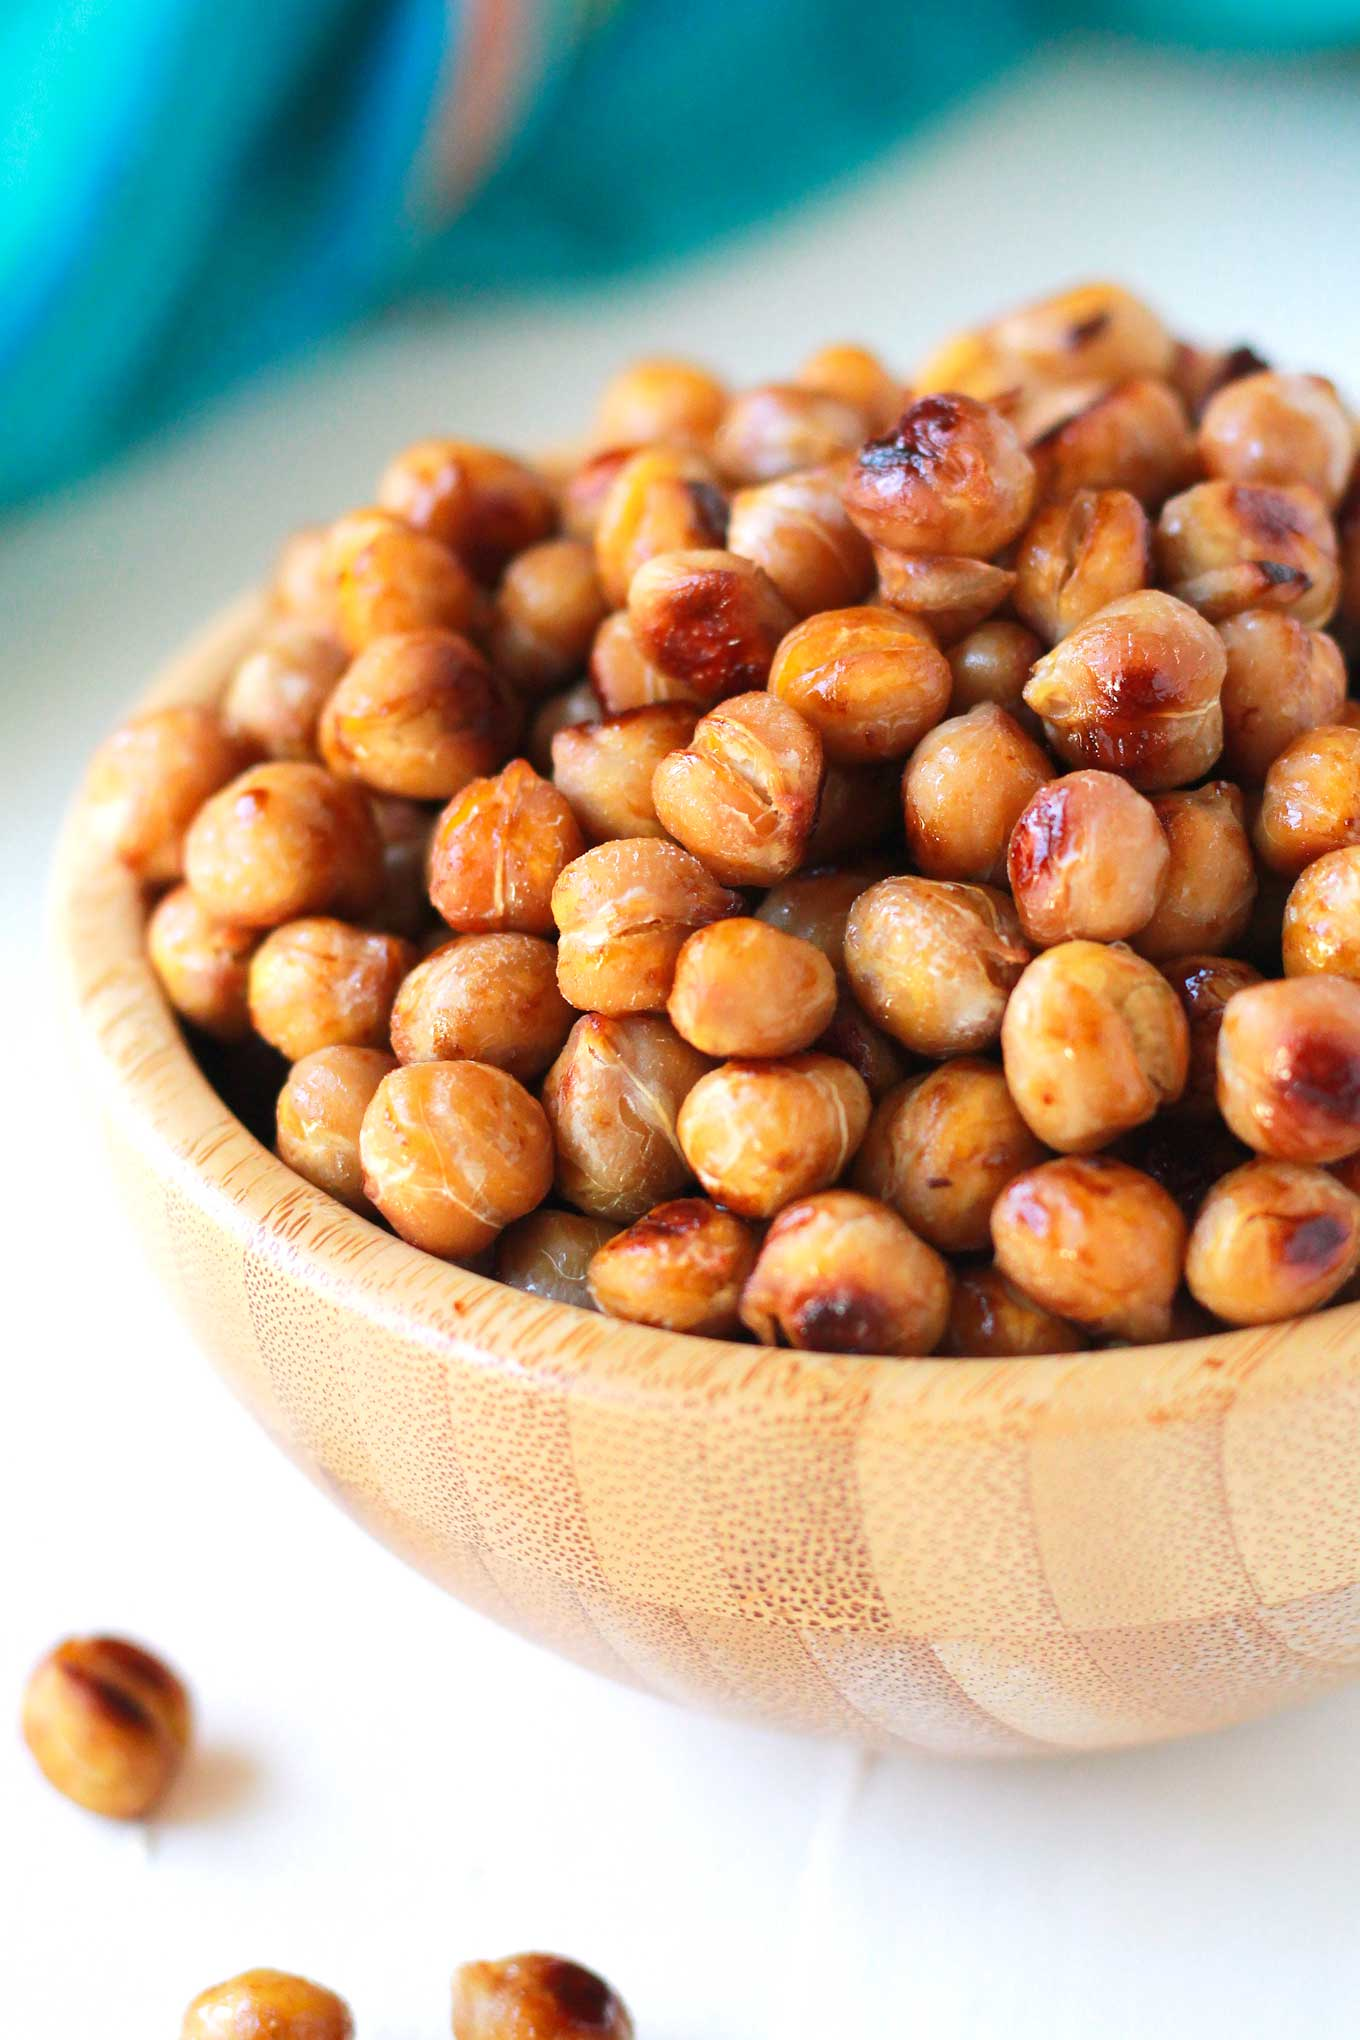 Easy Roasted Chickpeas | Crispy, Salty, Roasted Chickpeas are quick and easy to make! Eat as a snack or make it the star in your plant-based meal. | https://passtheplants.com